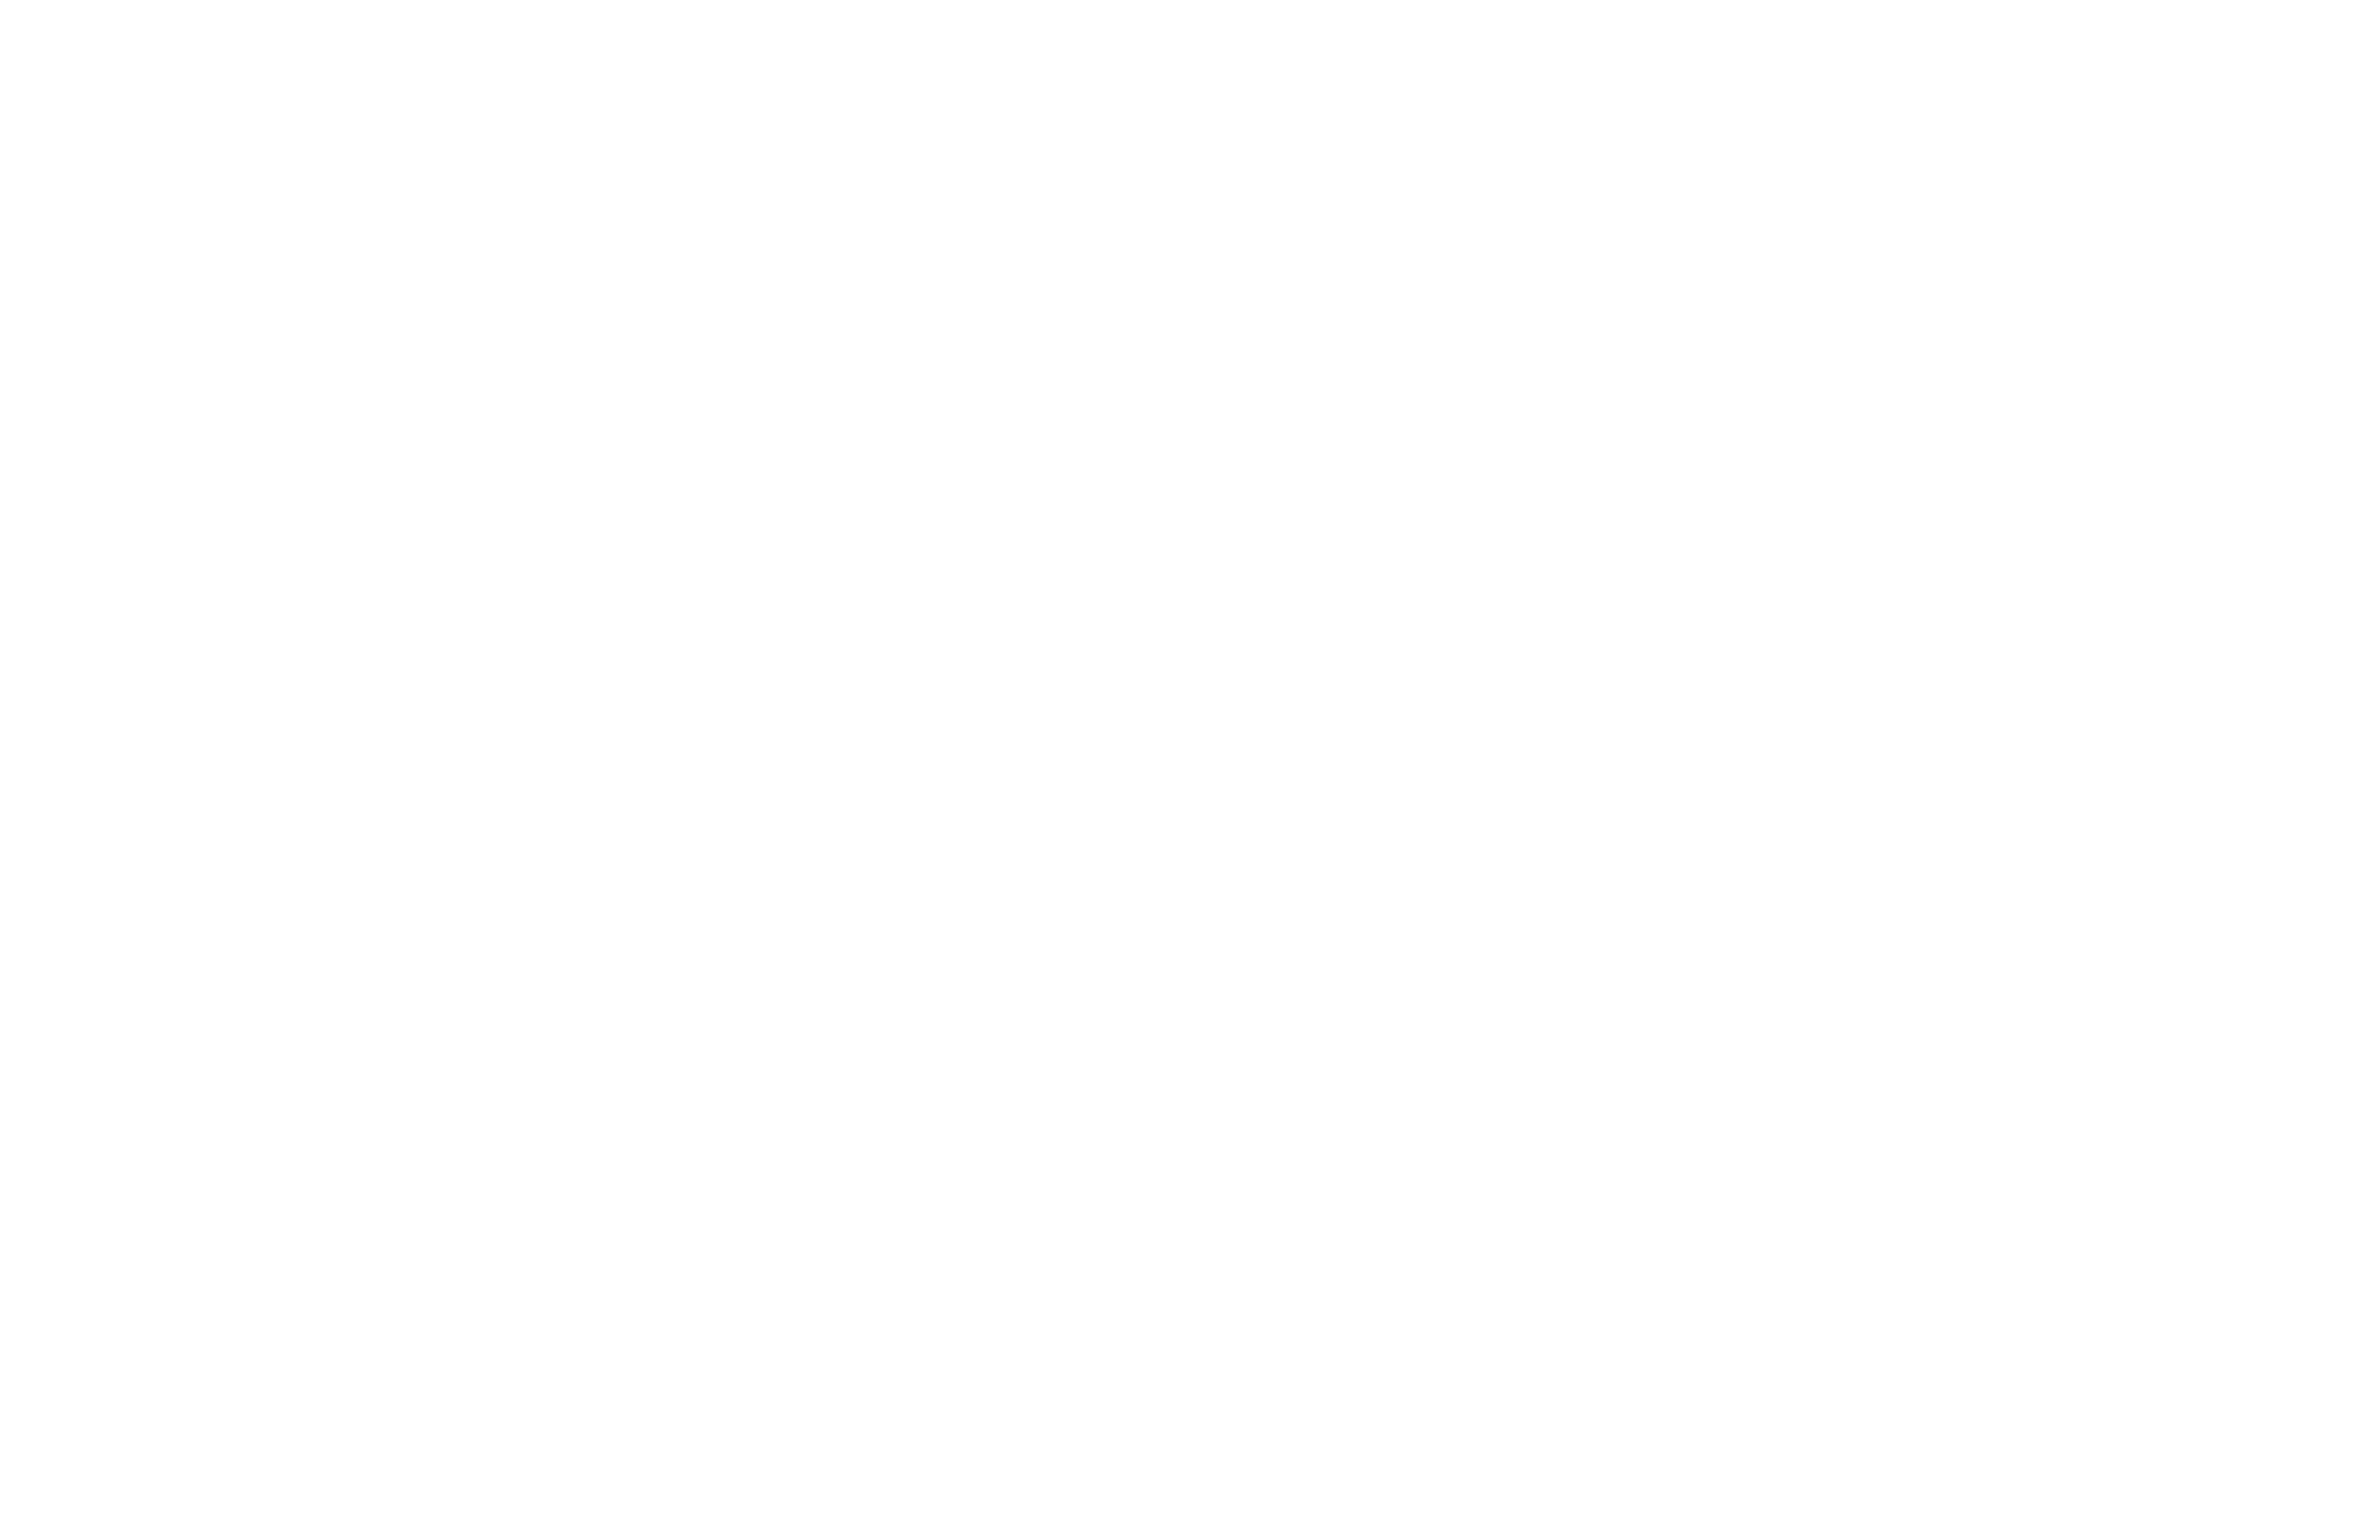 THEWEST.png